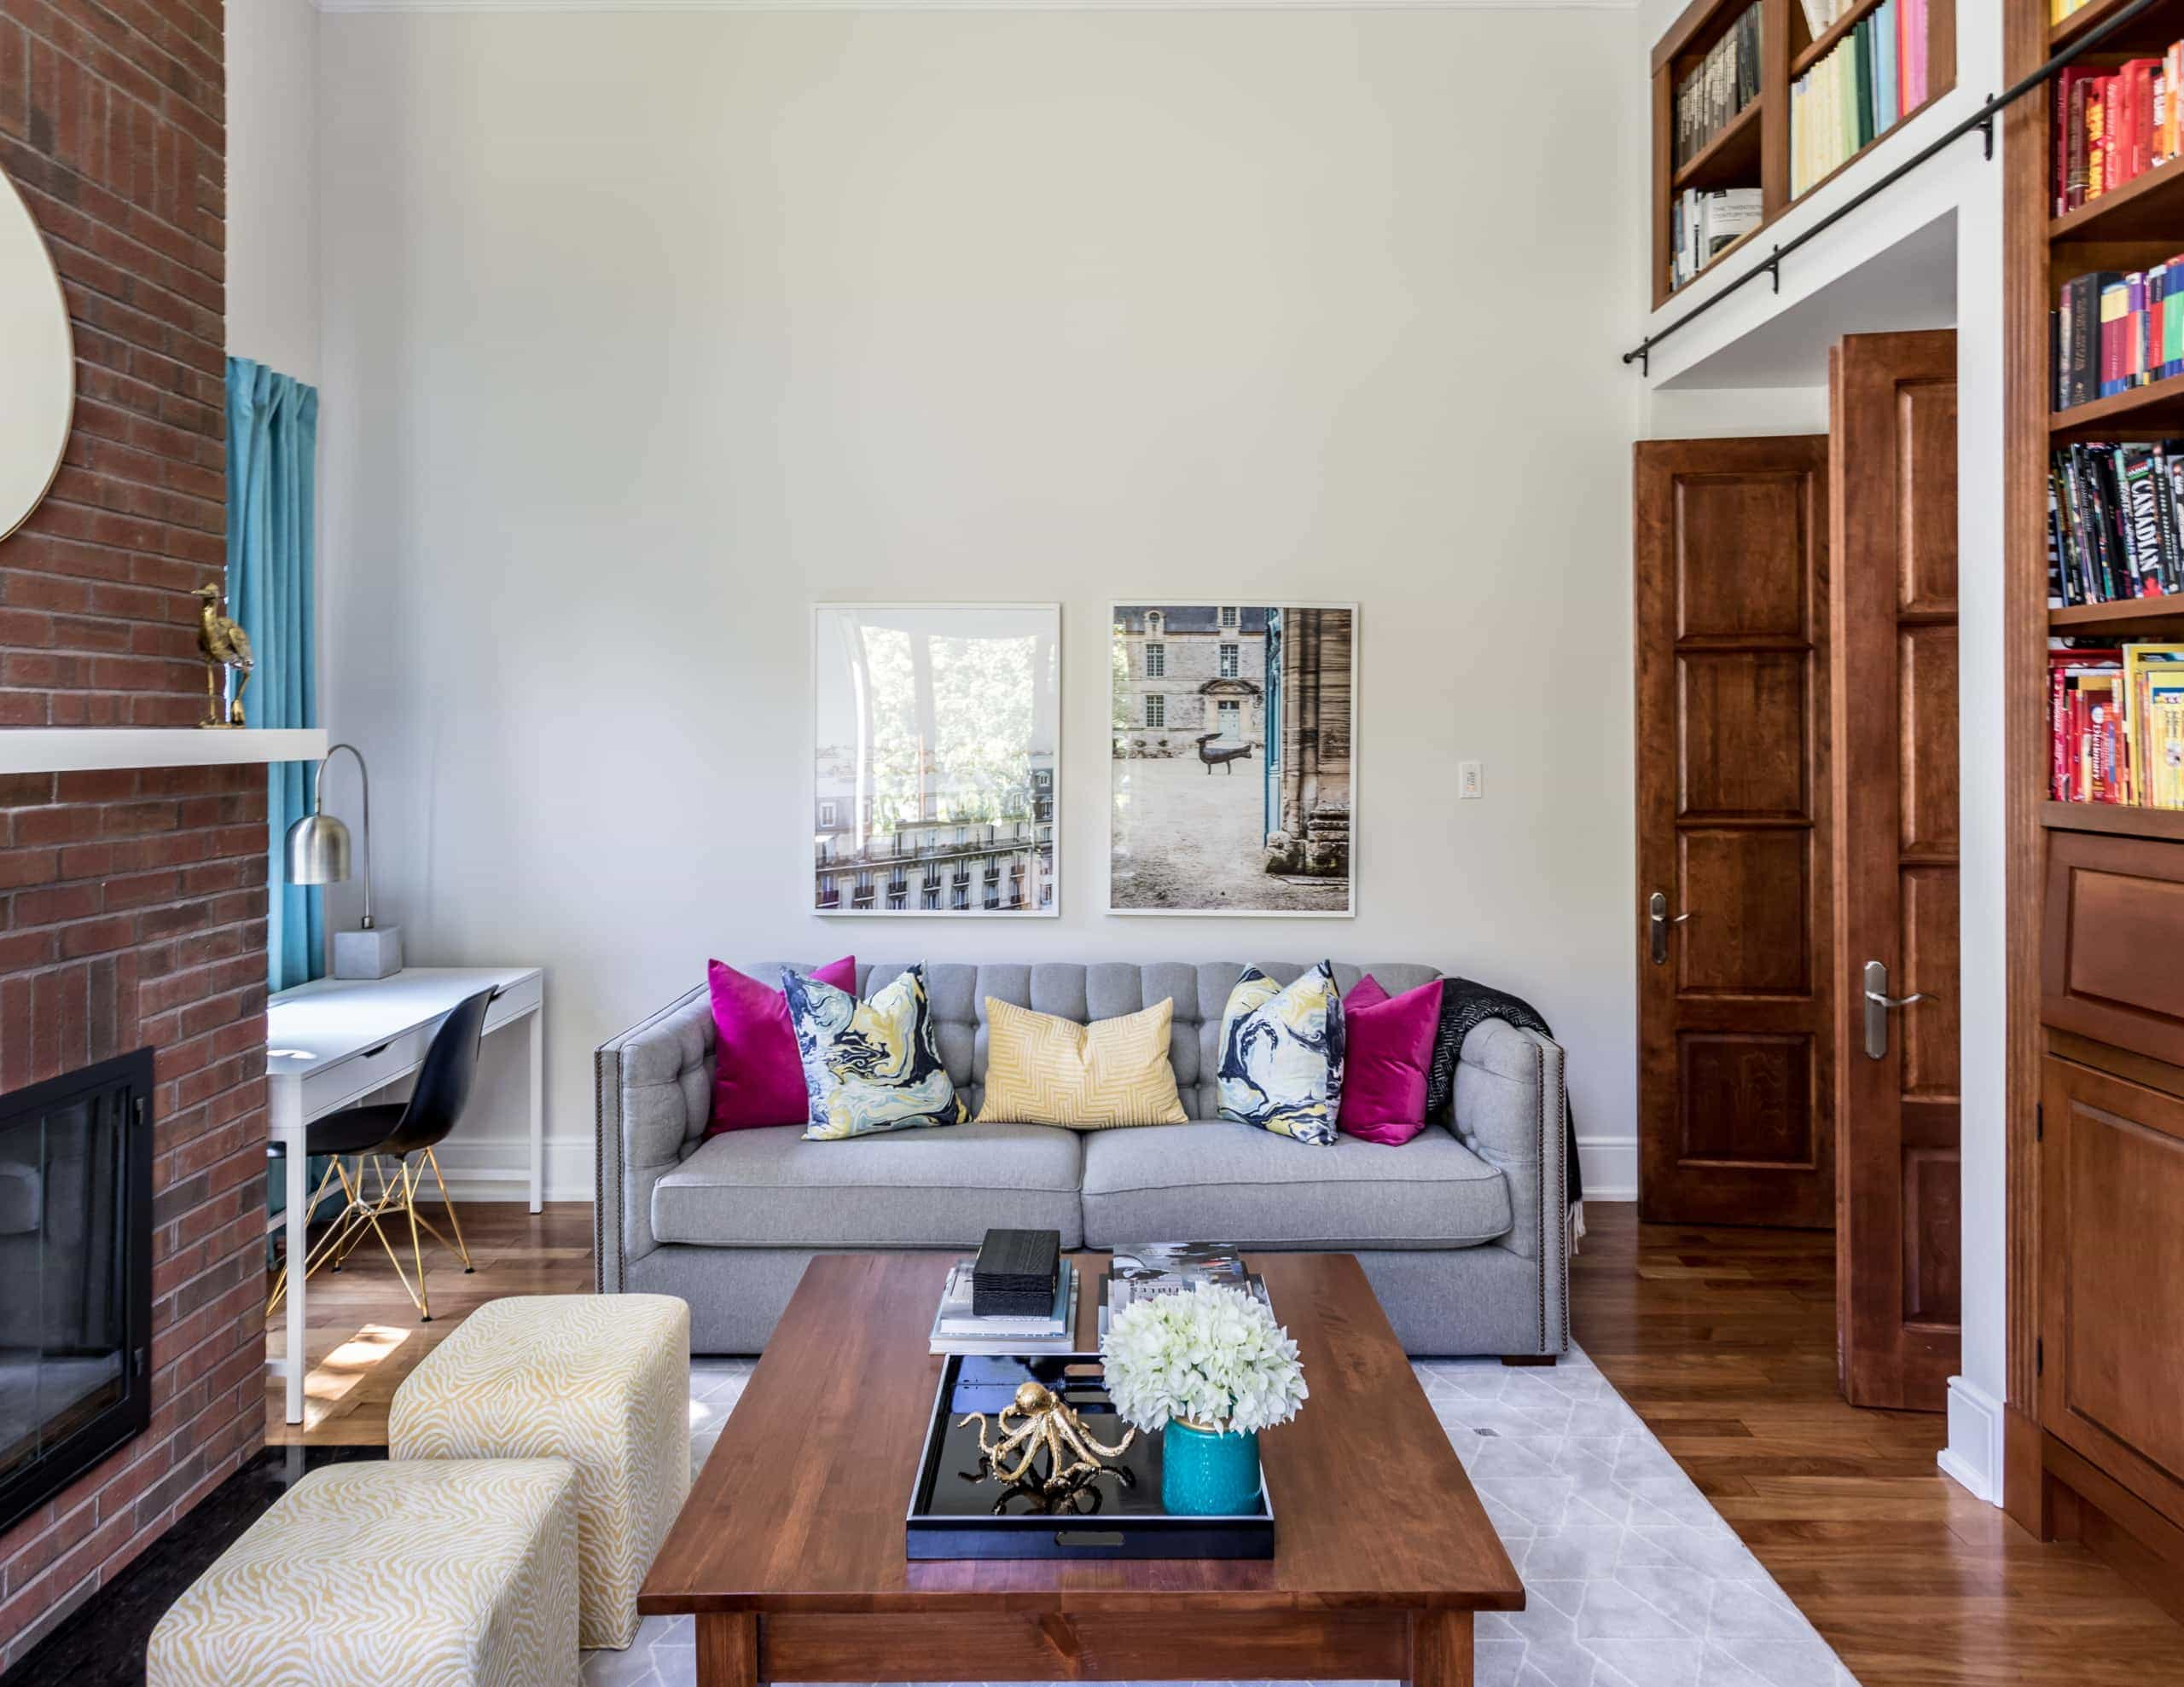 Large living room with a vibrant wooden coffee table